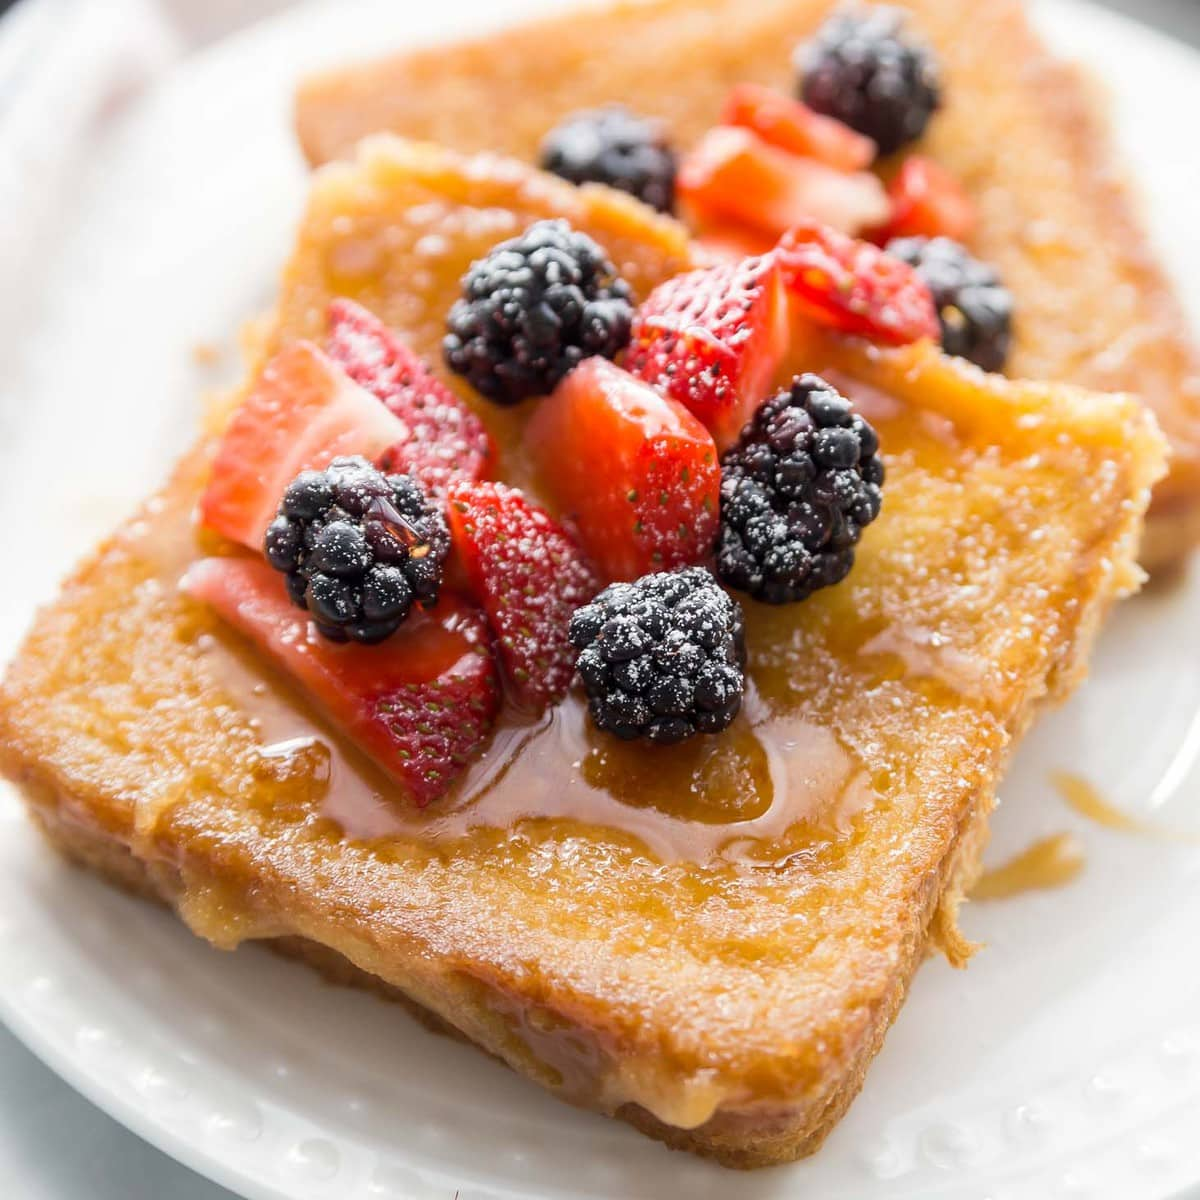 Creme Brulee French Toast with berries on plate